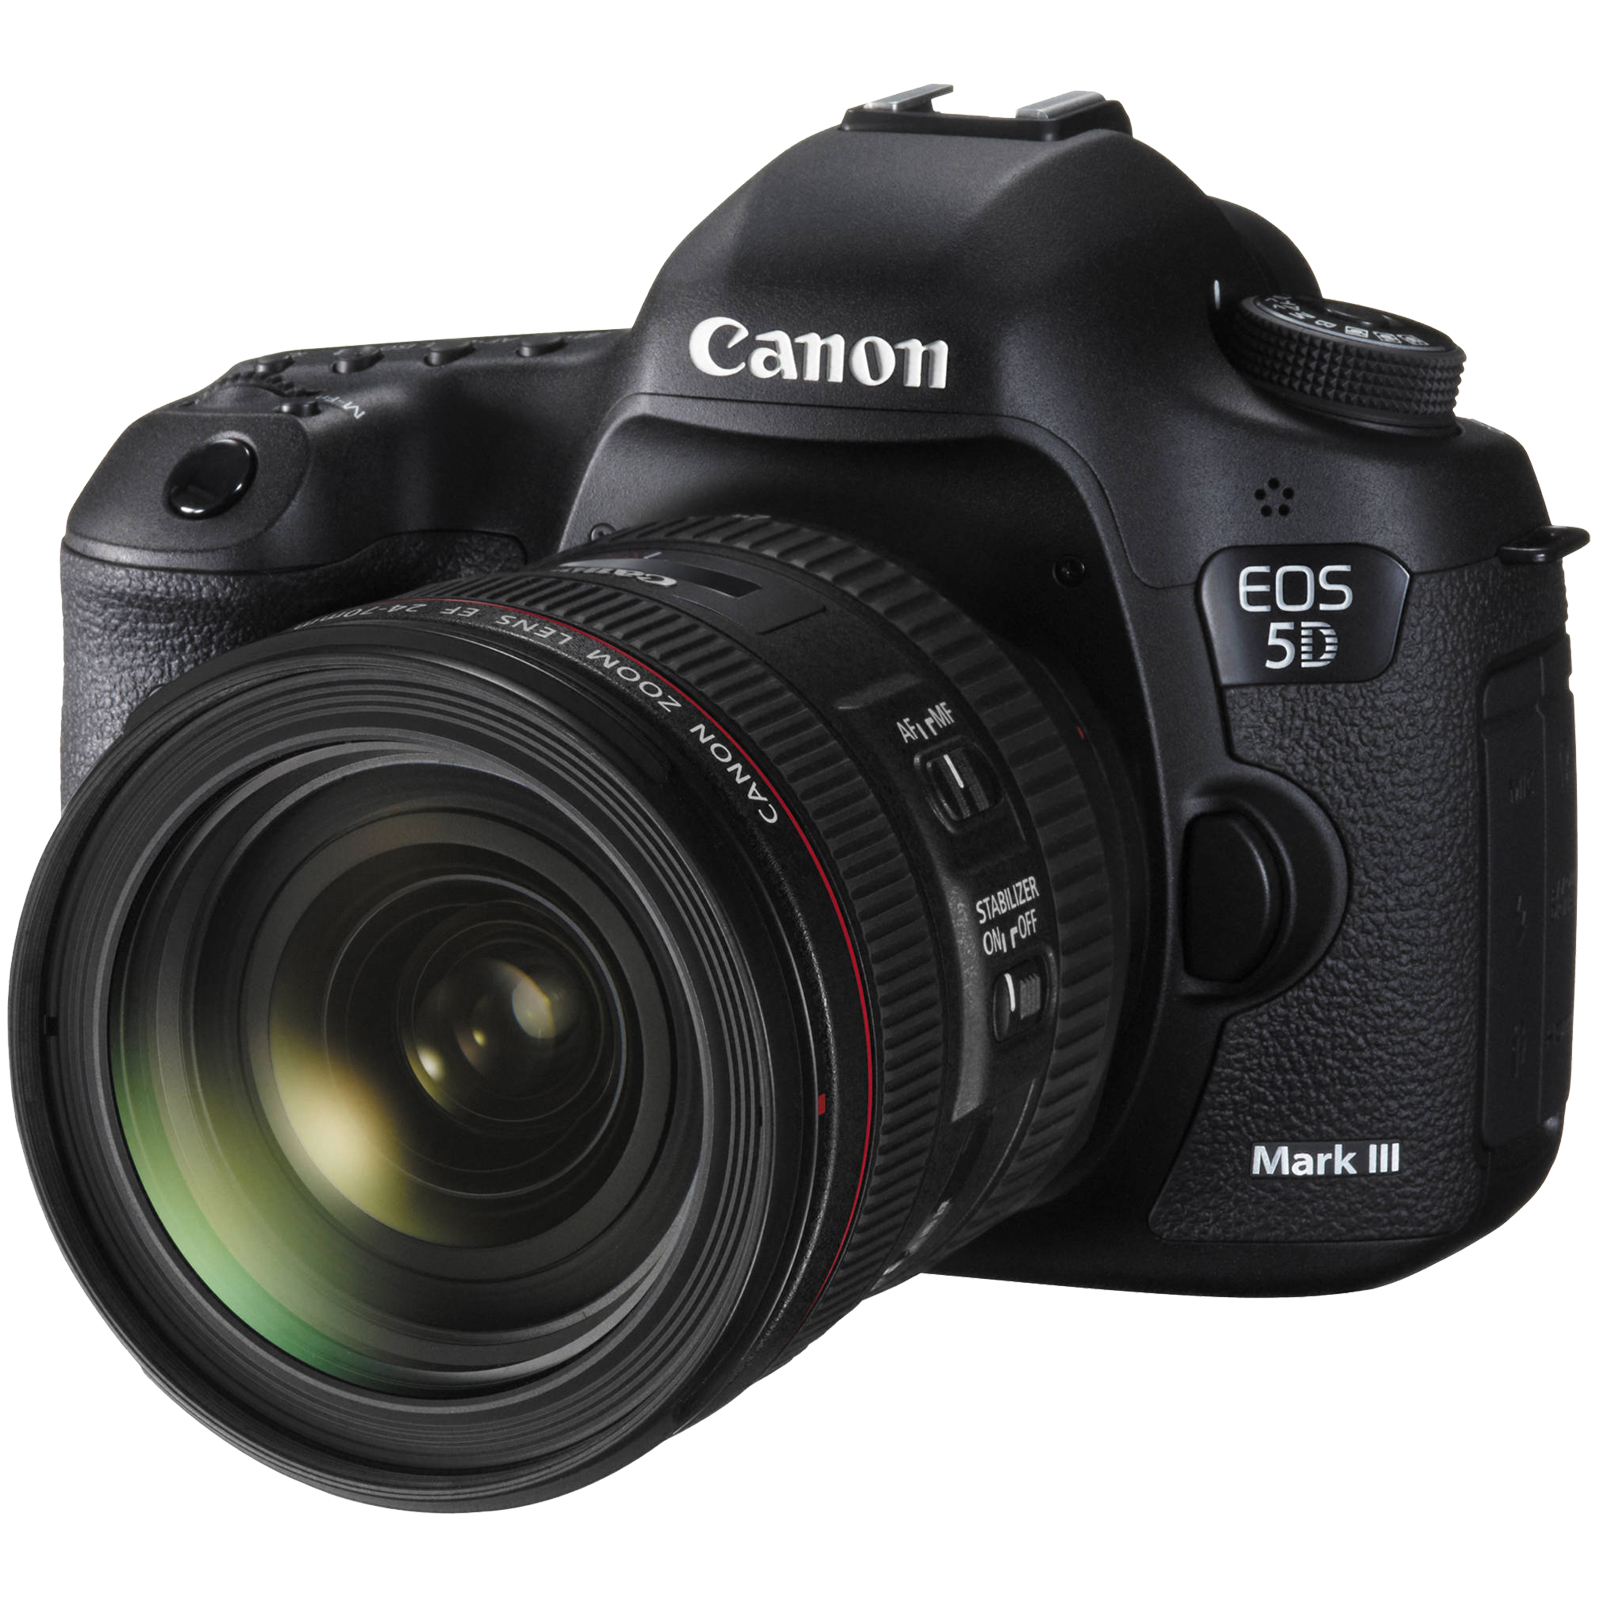 Canon EOS 5D Mark III Digital SLR Camera with EF 24-70mm f 4.0L IS USM Lens by Canon